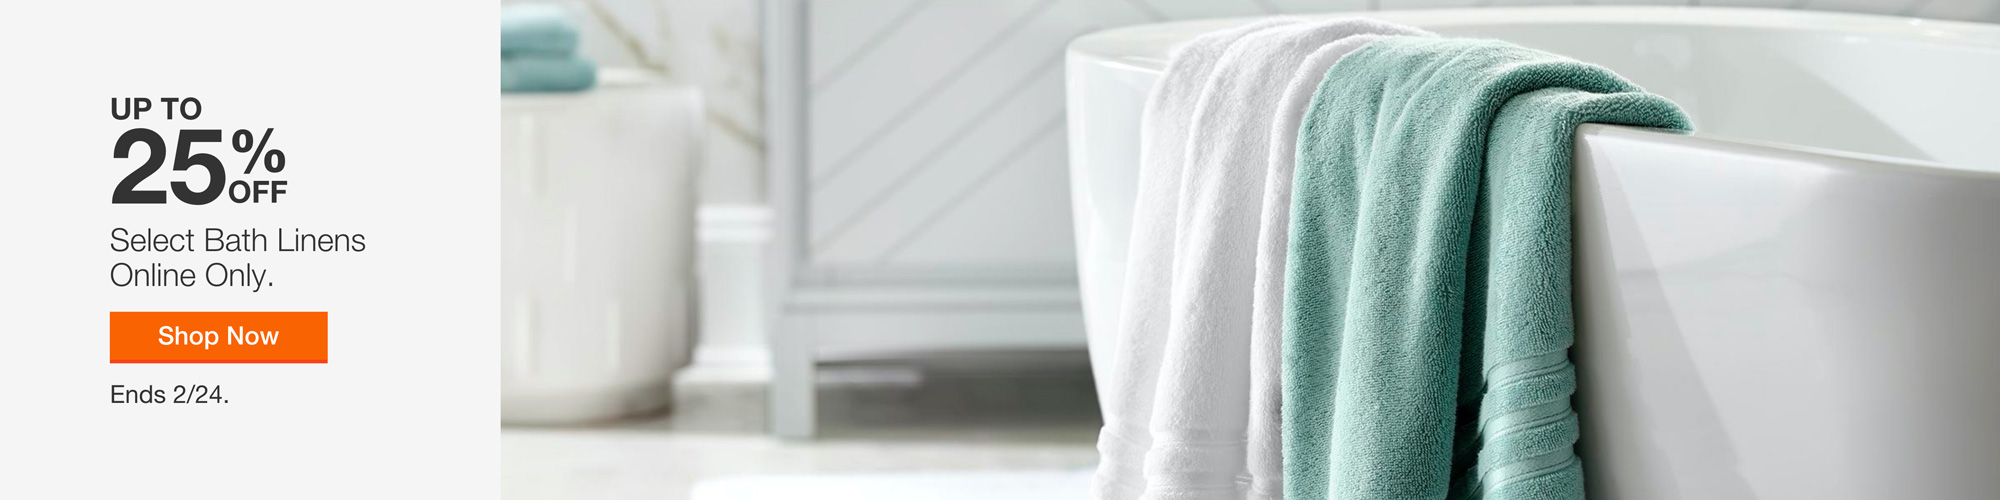 Up to 25% Off Select Bath Linens Online Only. Ends 2/24.